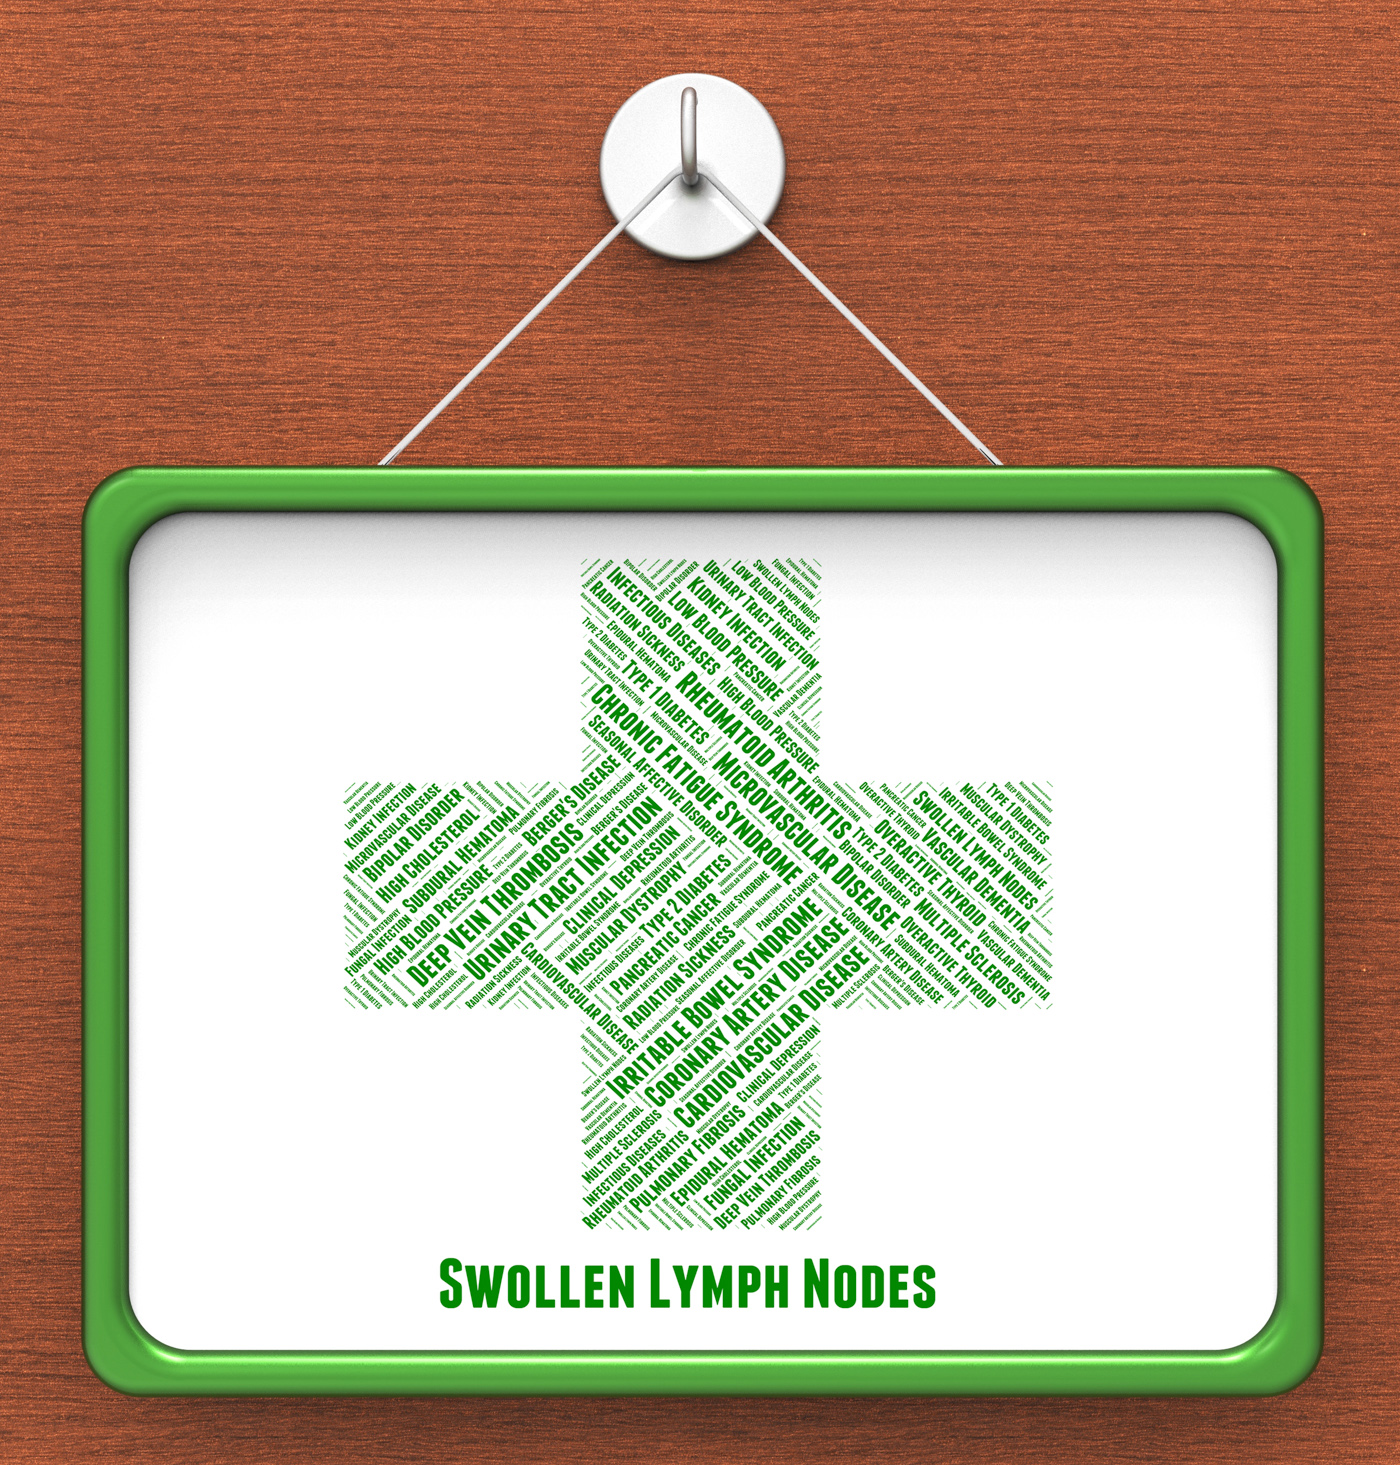 Swollen lymph nodes shows ill health and affliction photo